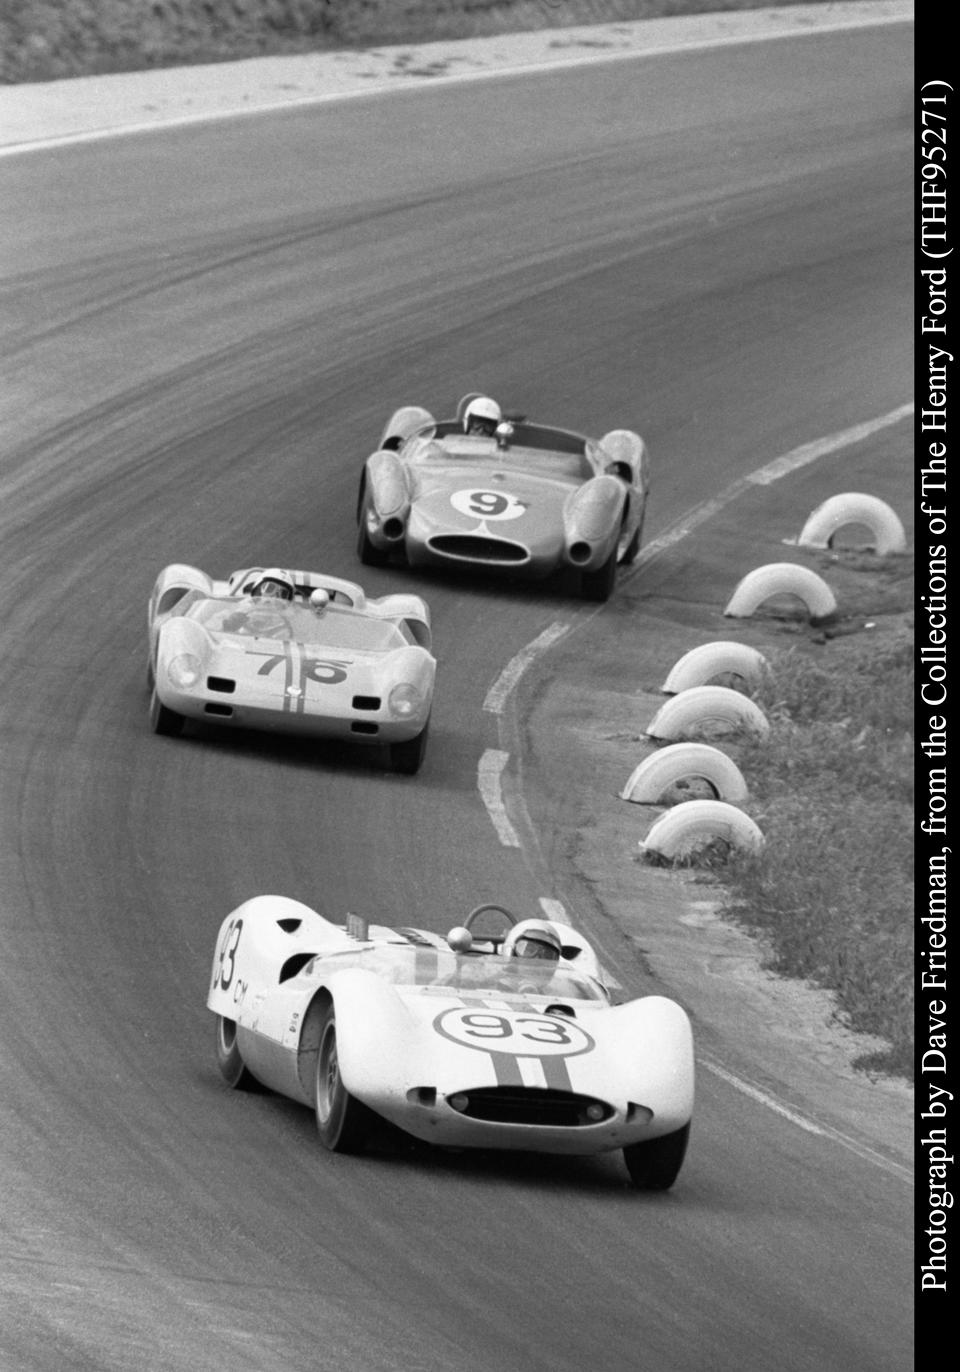 Multiple-time Monterey Historics participant,1964 Huffaker-Genie Mk 10 USRRC Sports-Racer  Chassis no. H120